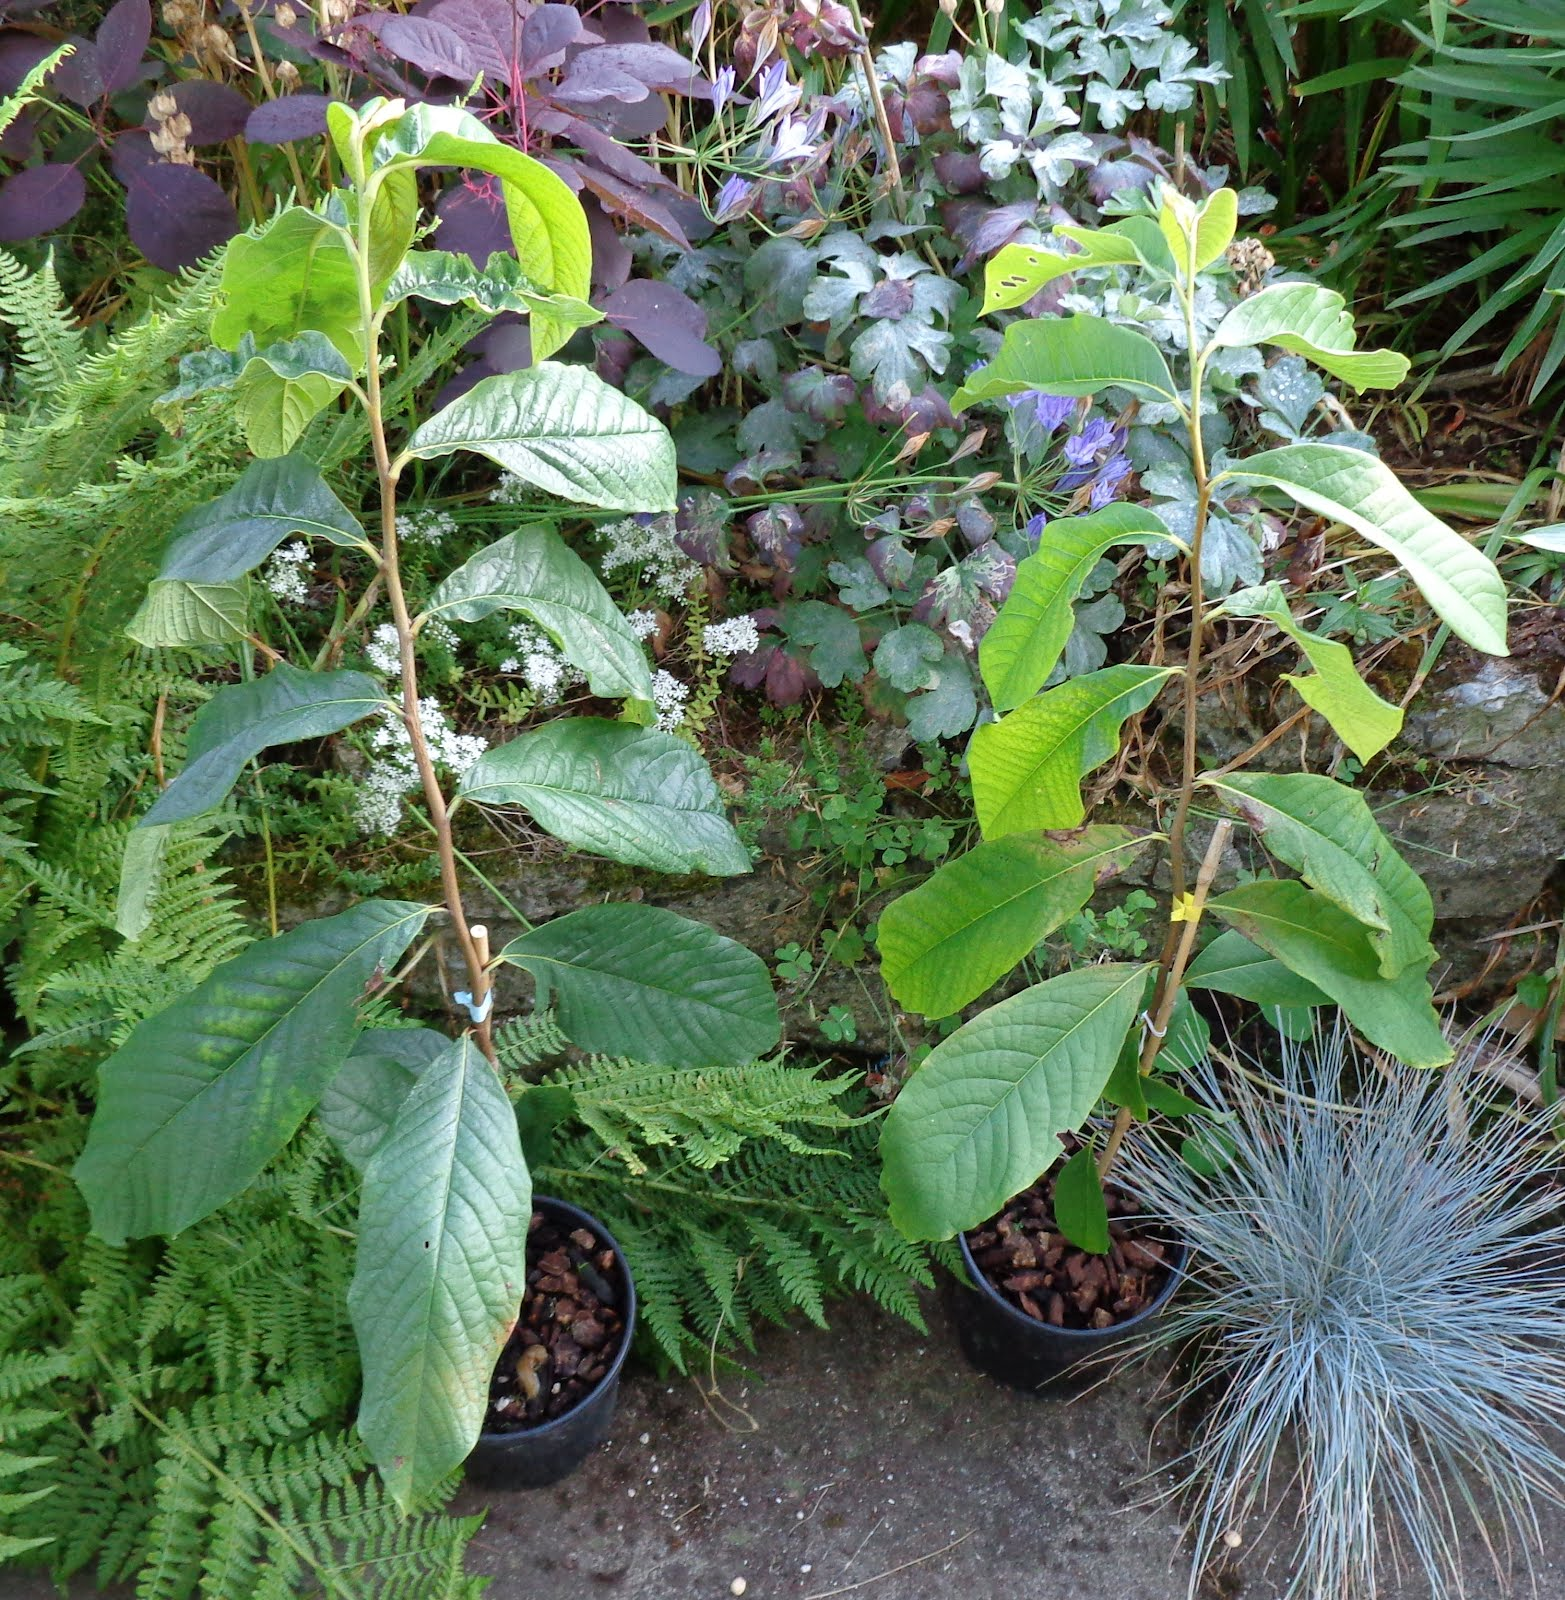 Here Are The 2 Containerized Paw Trees I Bought Yesterday At Portland Nursery When Walked Past Them Thought No Impossible